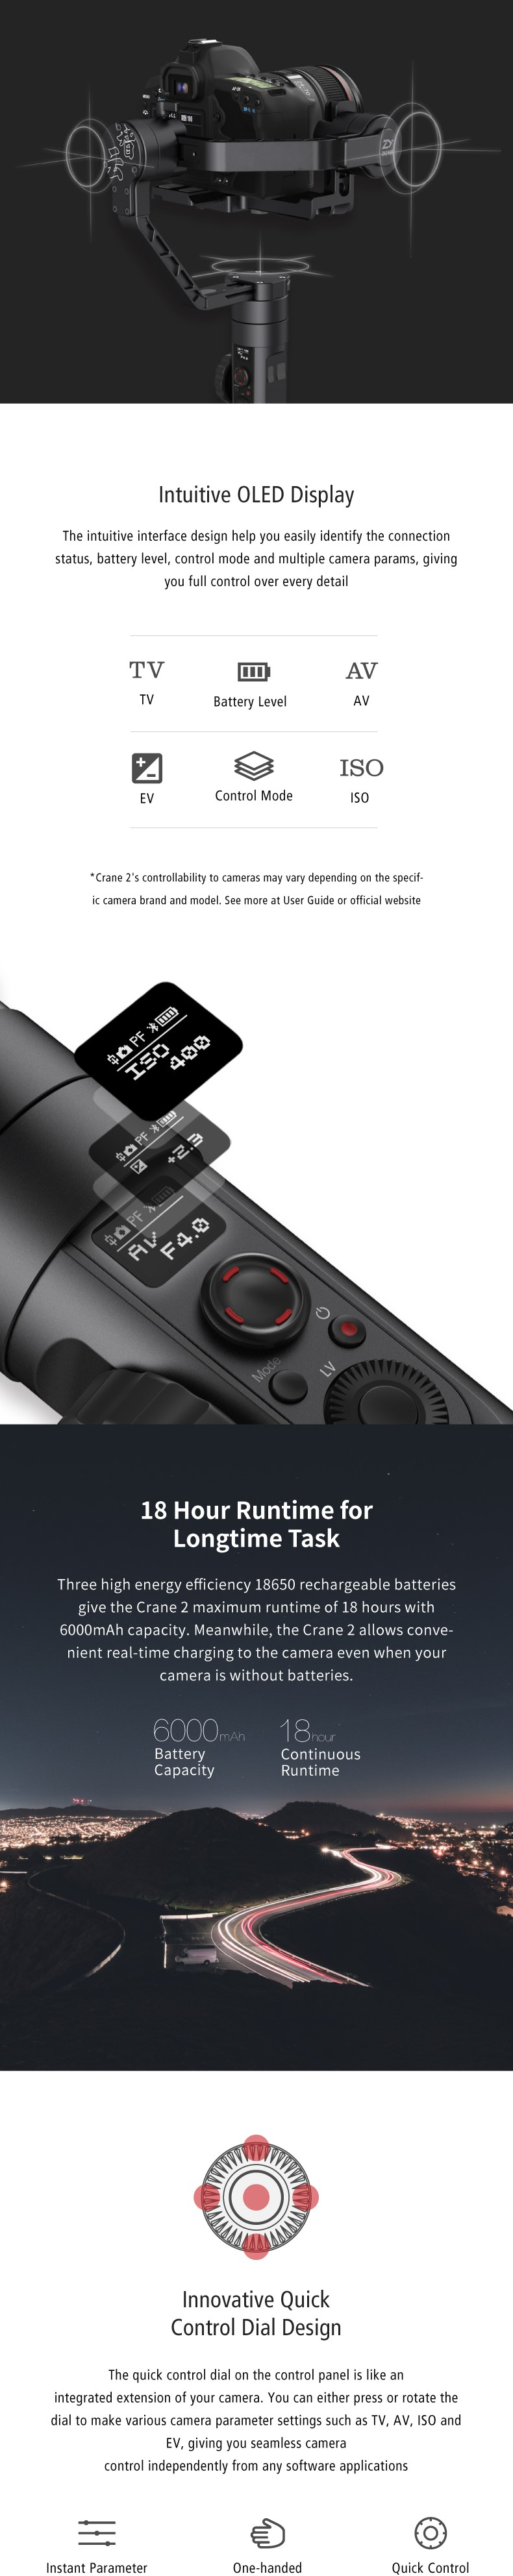 Zhiyun Crane 2(Servo Follow Focus Included)3-Axis Handheld Gimbal Stabilizer Wireless Remote 7lb Payload Display 18H Runtime1